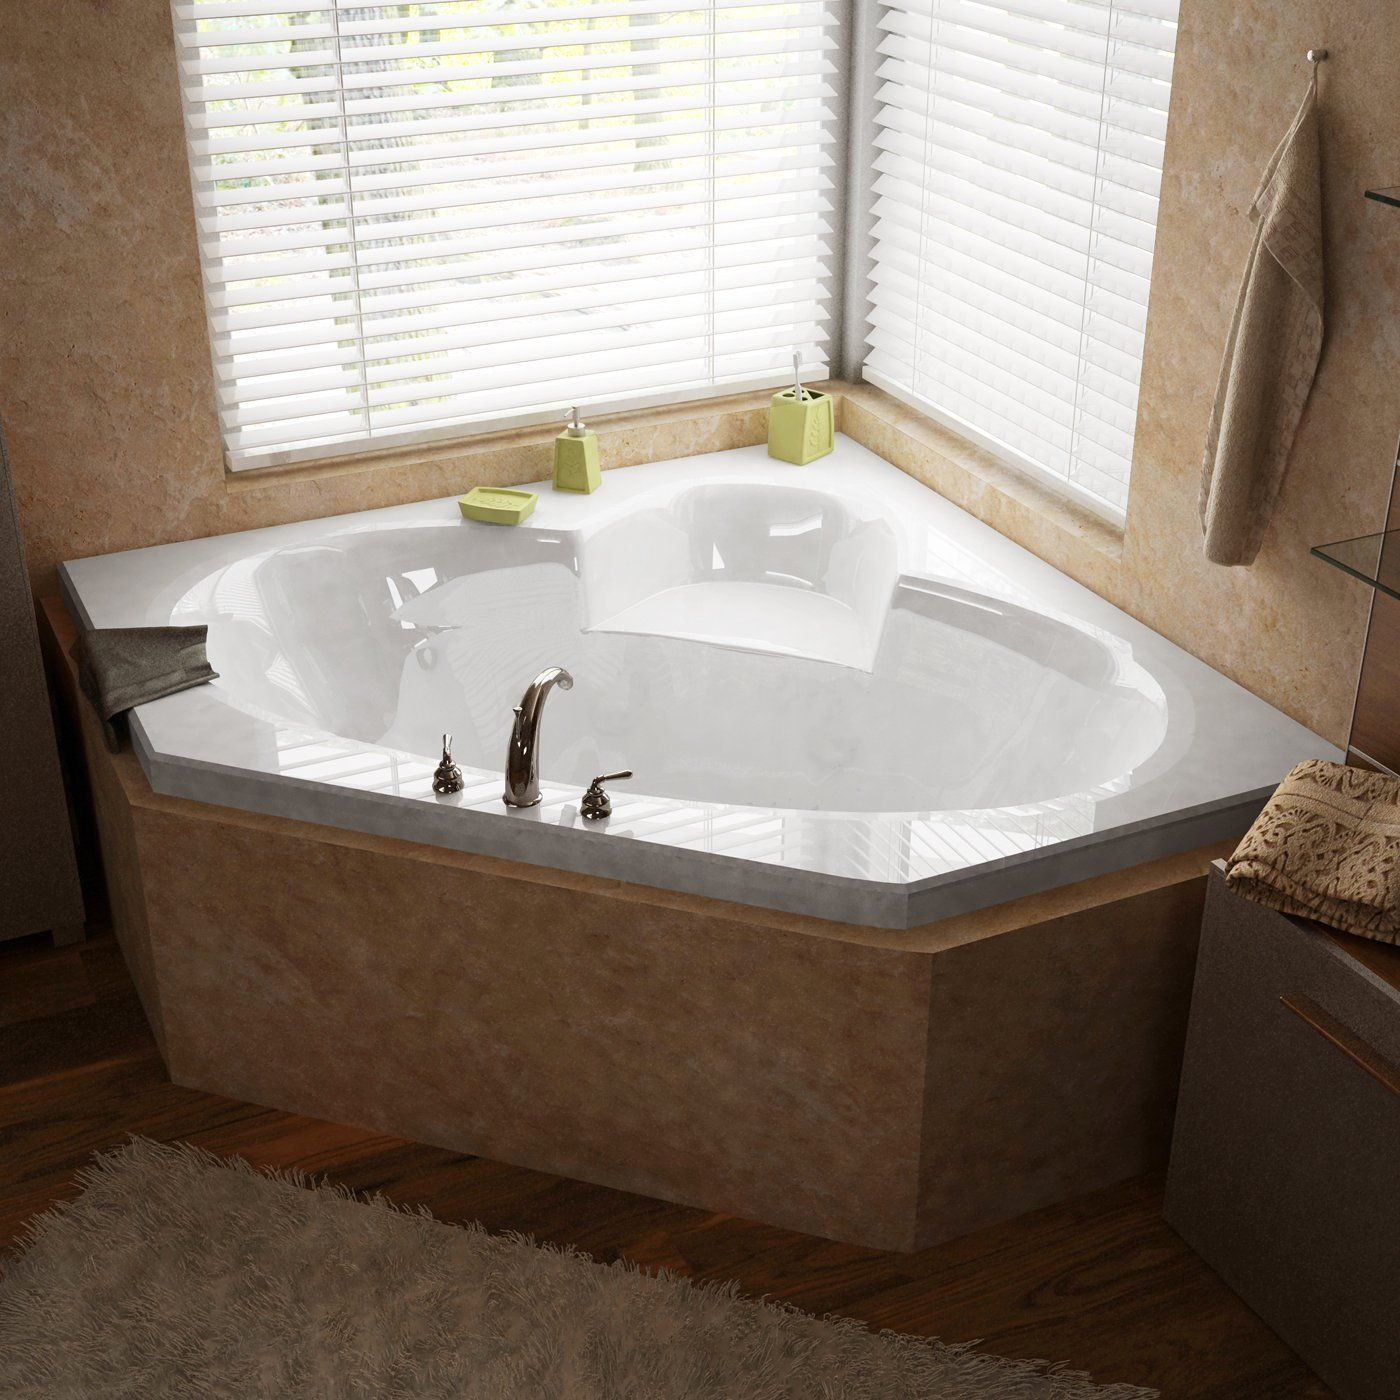 Atlantis 6060s Sublime Corner Soaking Bathtub At Atg S Browse Our Bathtubs Whirlpool